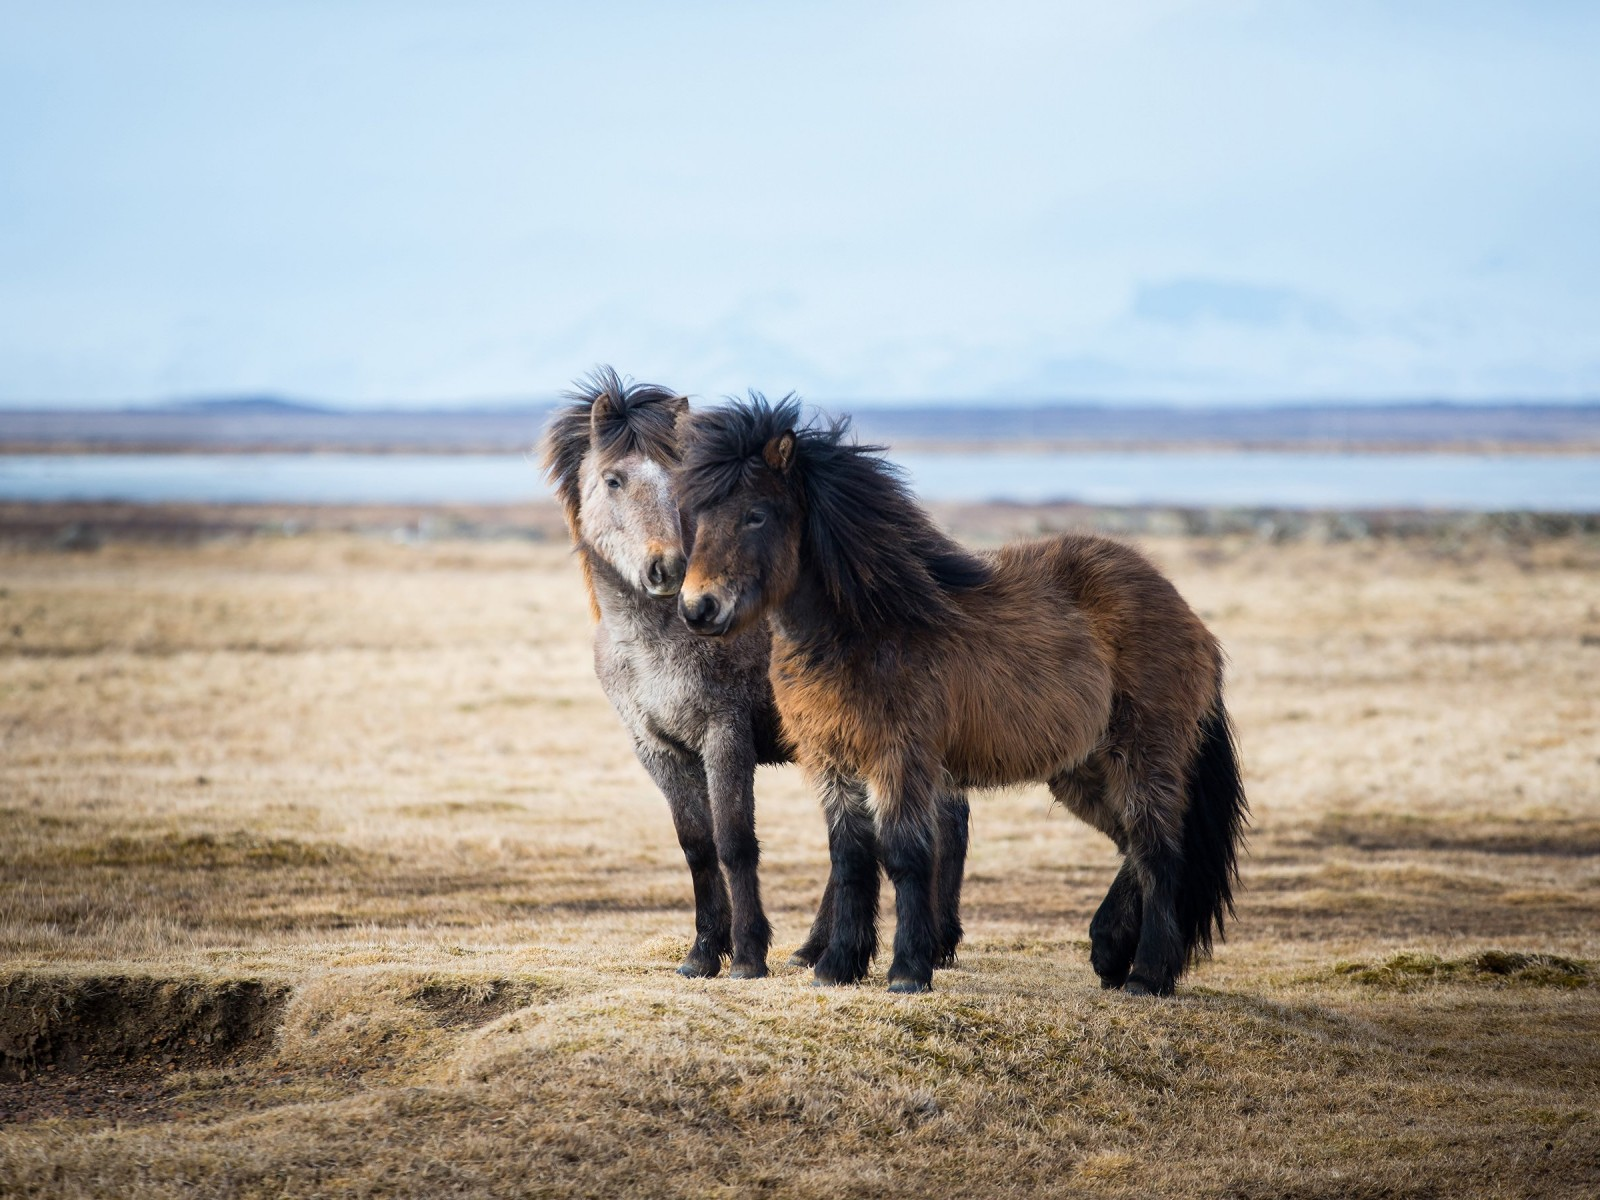 Icelandic Horses Wallpaper for Desktop 1600x1200